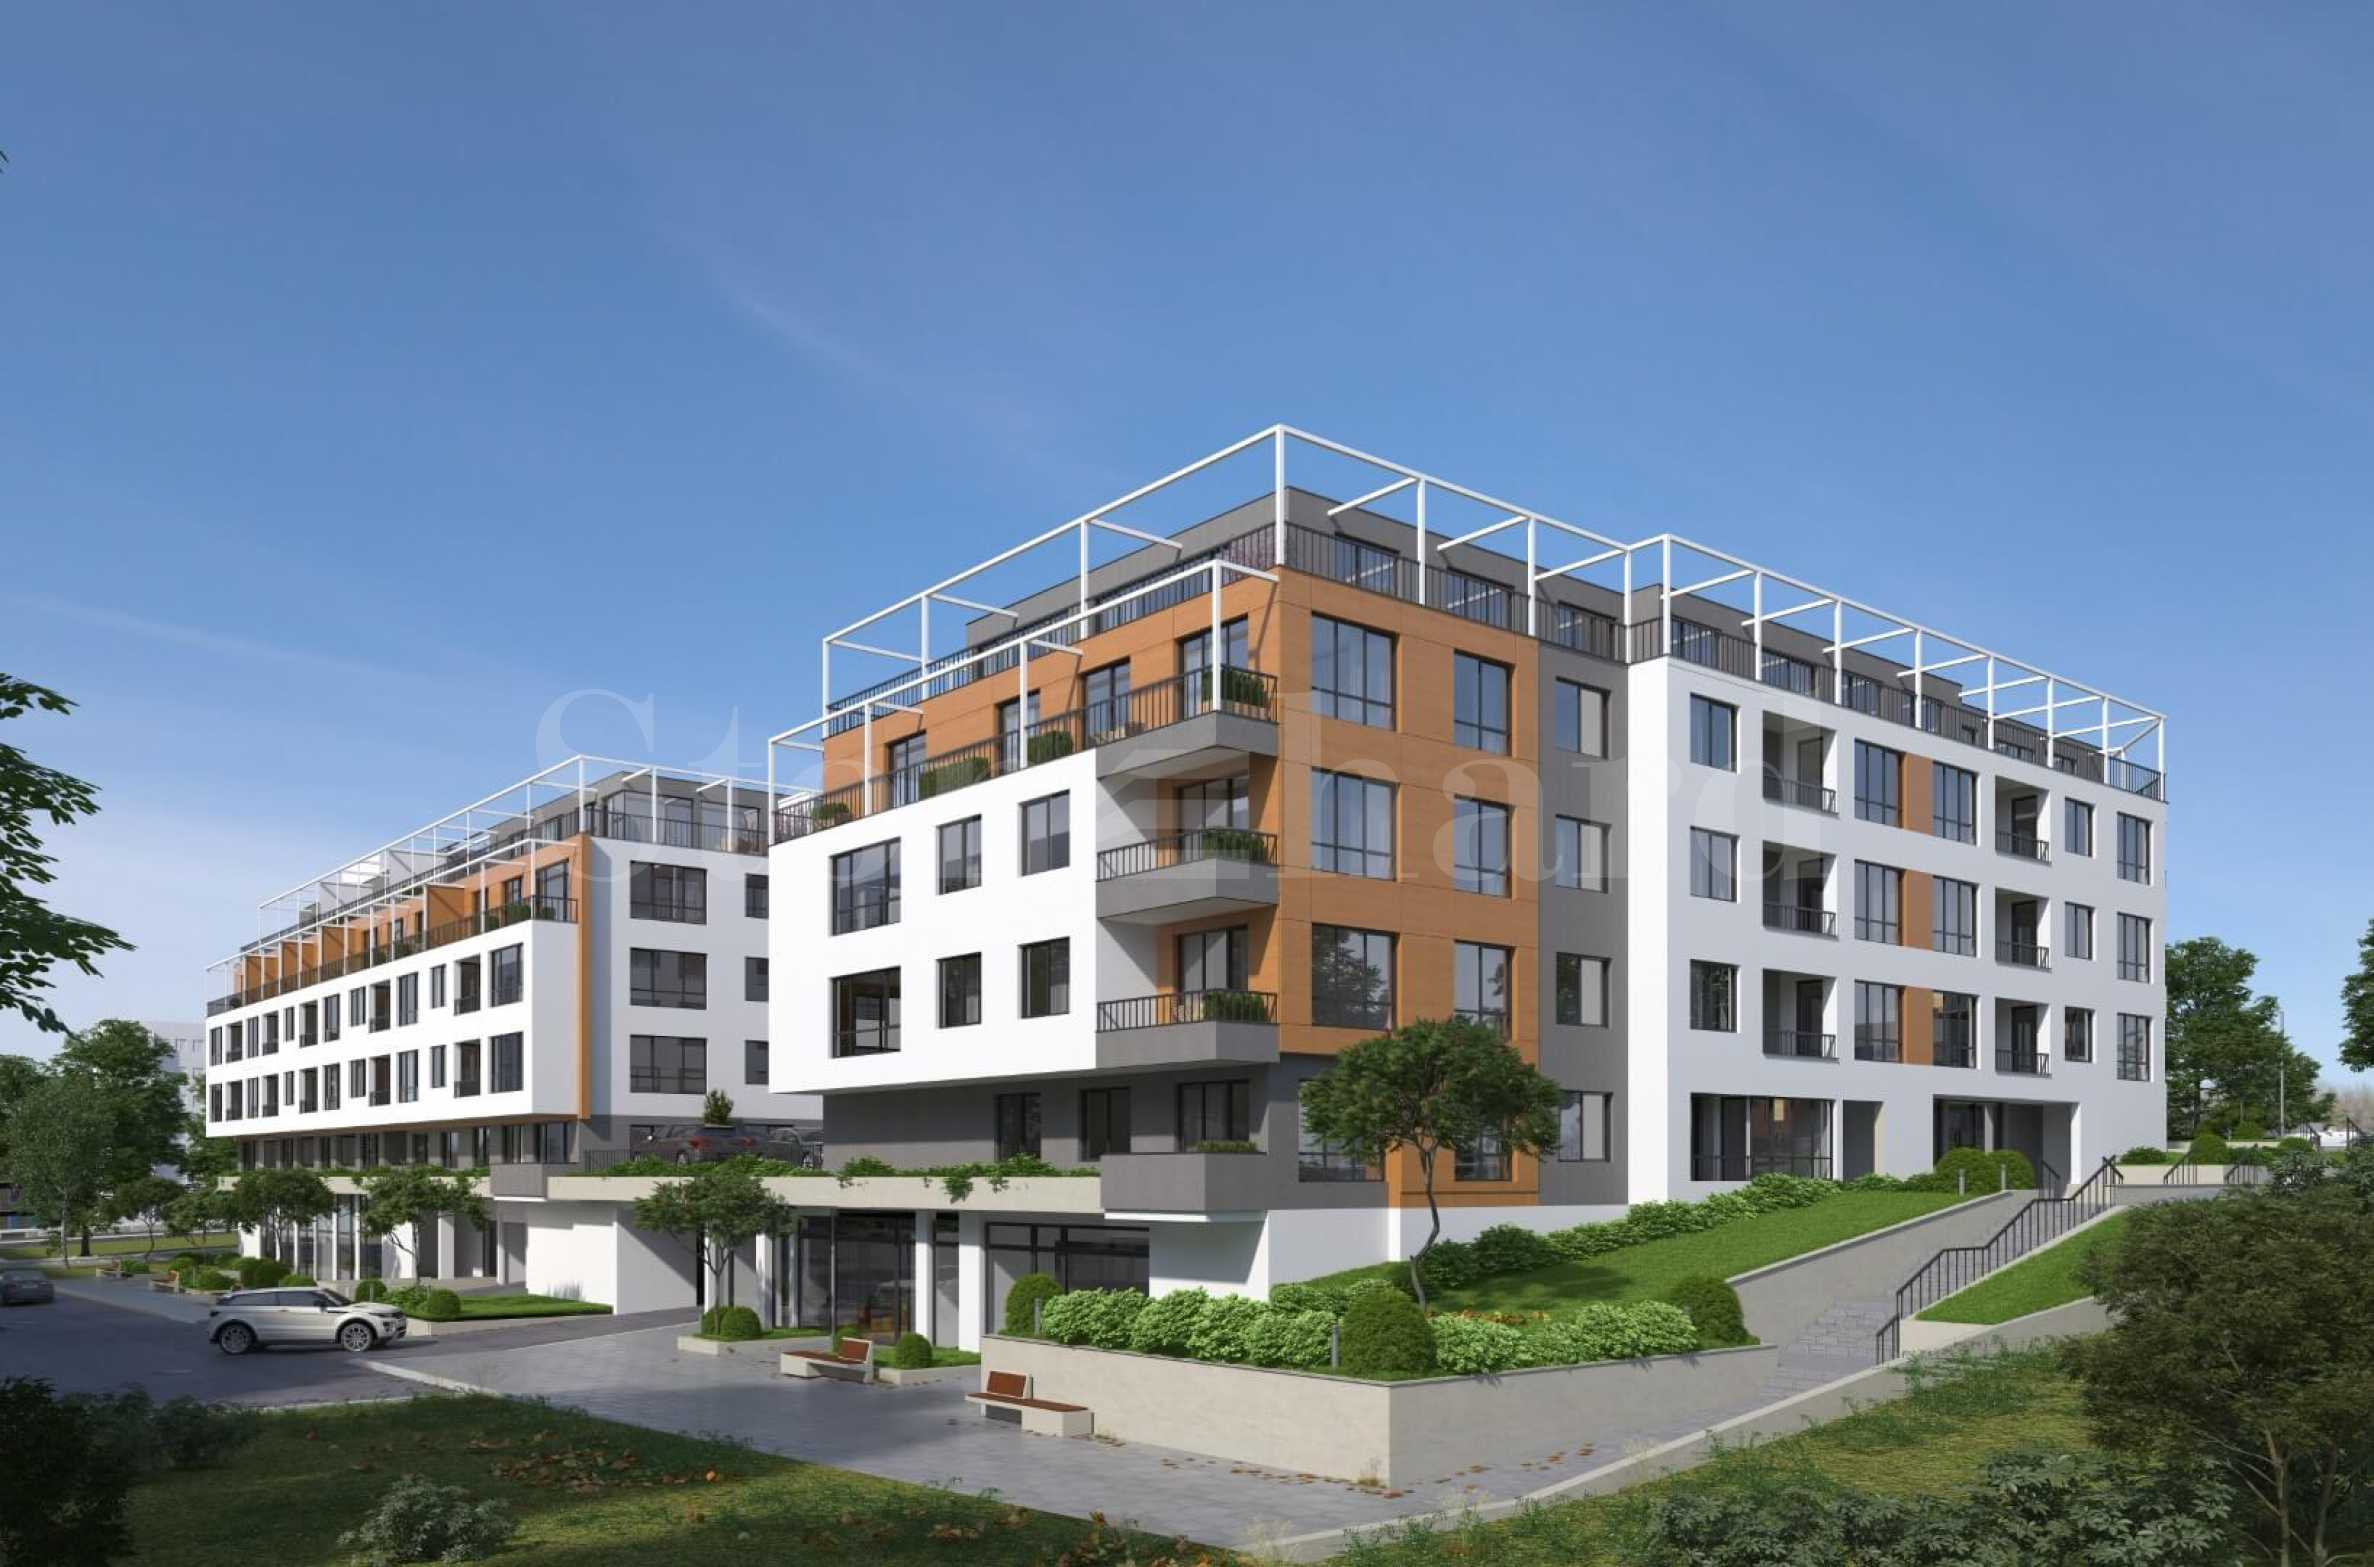 Apartments in 2 modern buildings, new construction in Mladost district1 - Stonehard